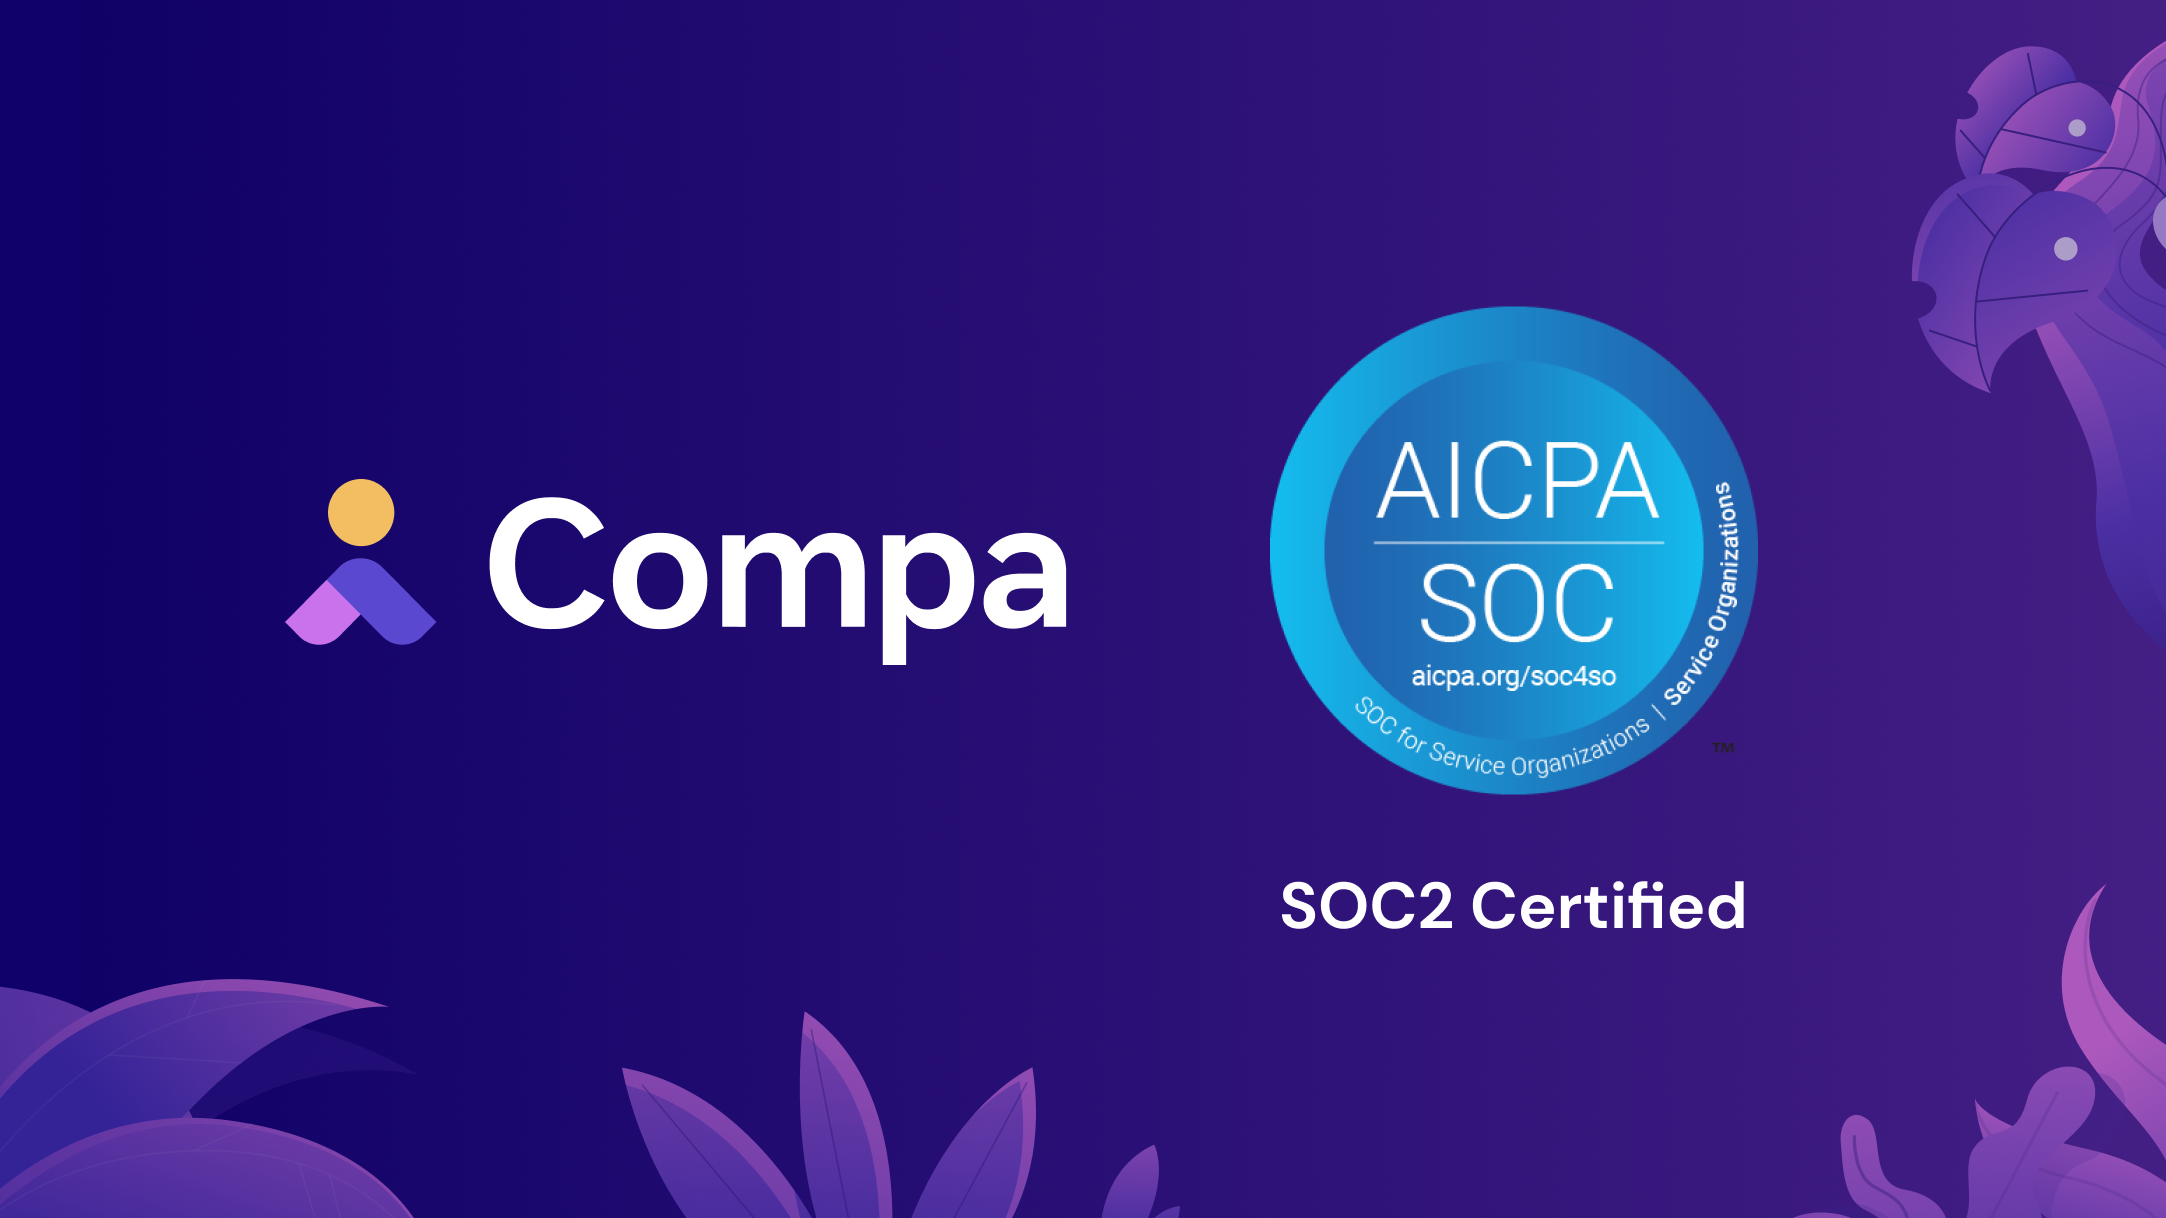 Compa Achieves SOC2 Security Standard